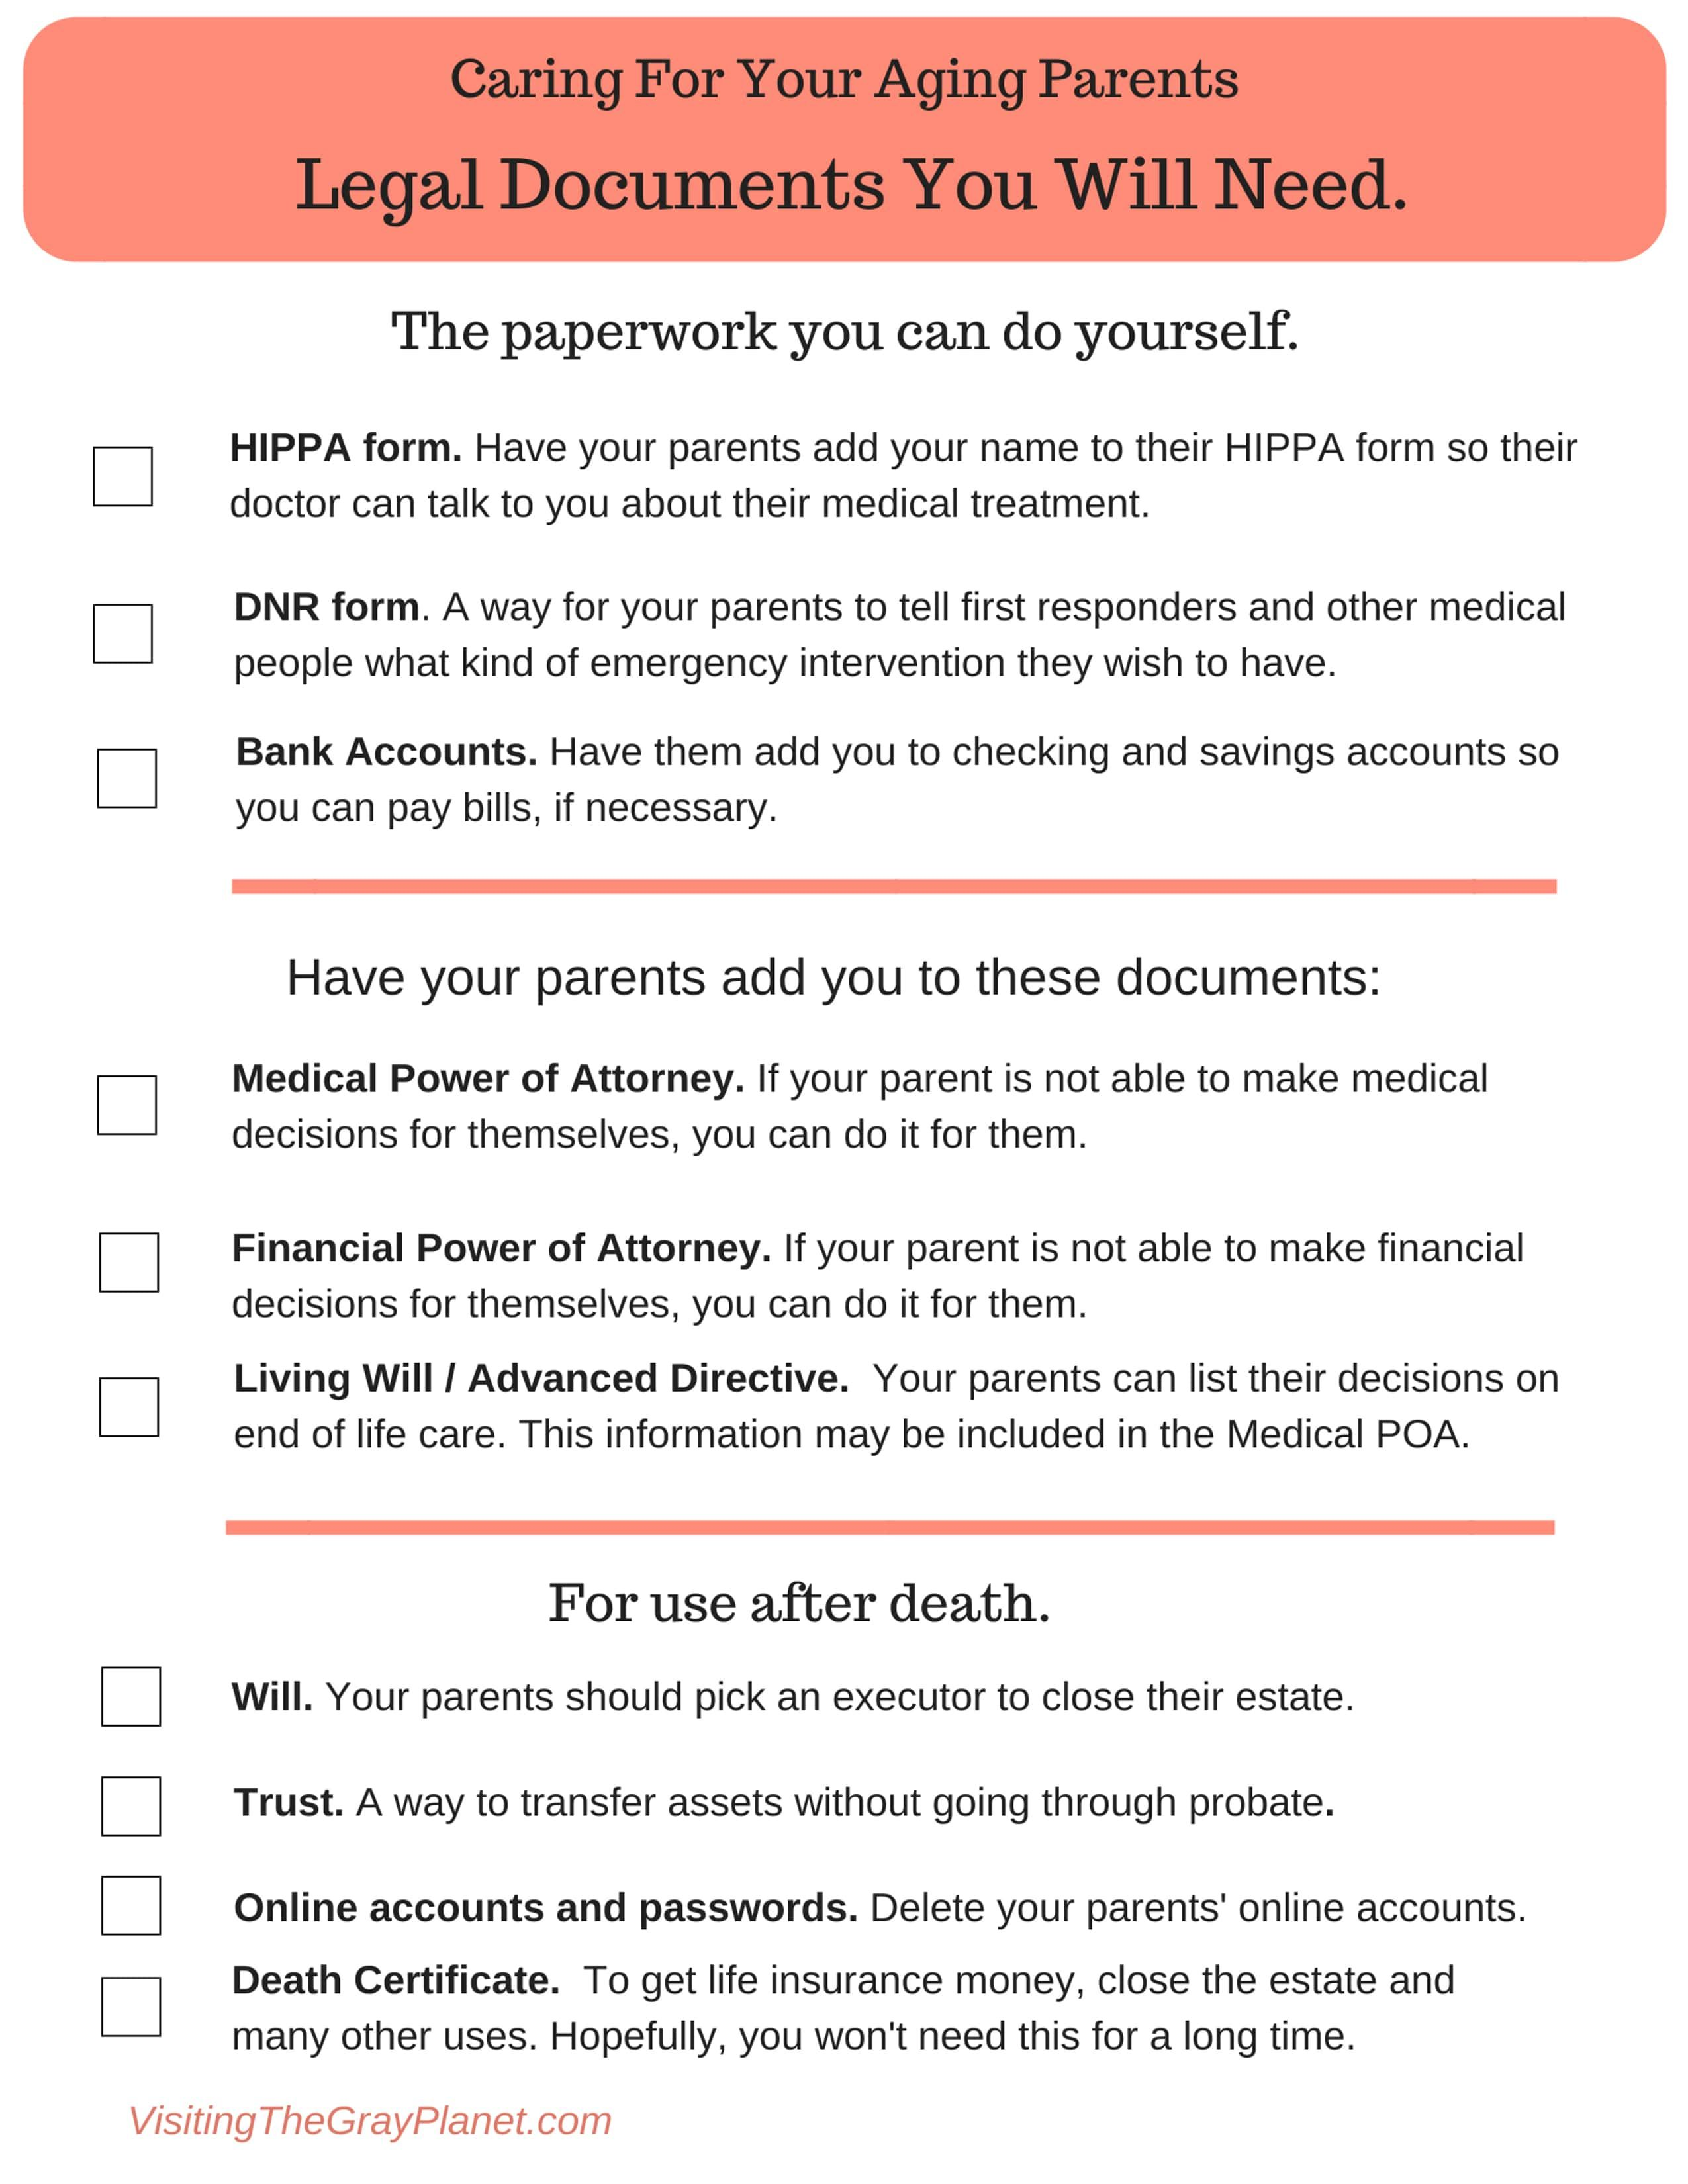 This Is A Printable Checklist Of Legal Documents You Will Need To